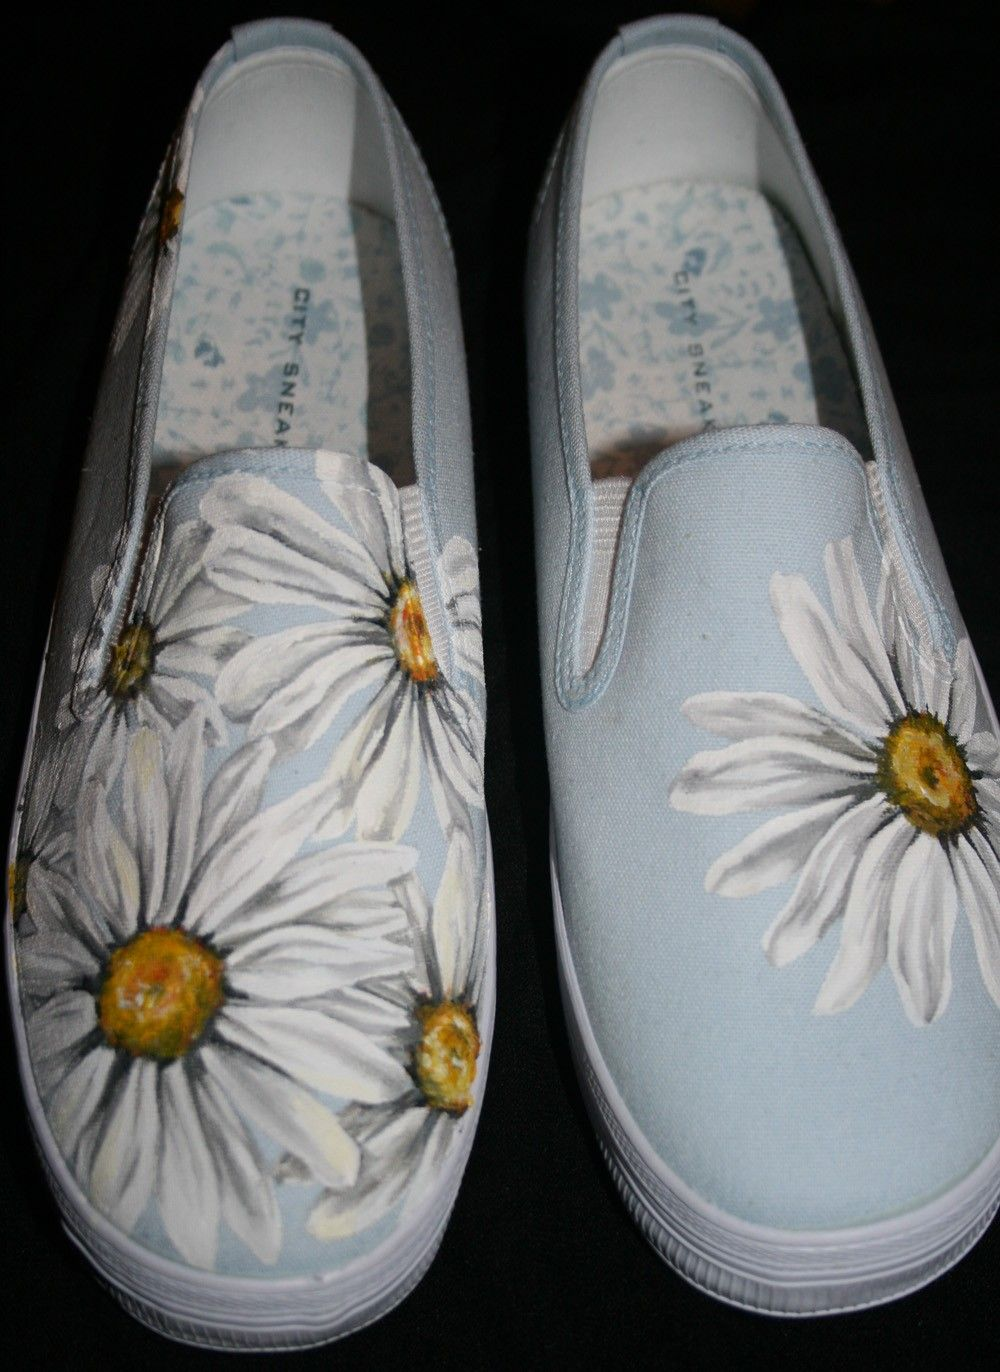 b52b698aef5b hand painted daisy shoes--would love to make a pair for myself!!! These are  so adorable!